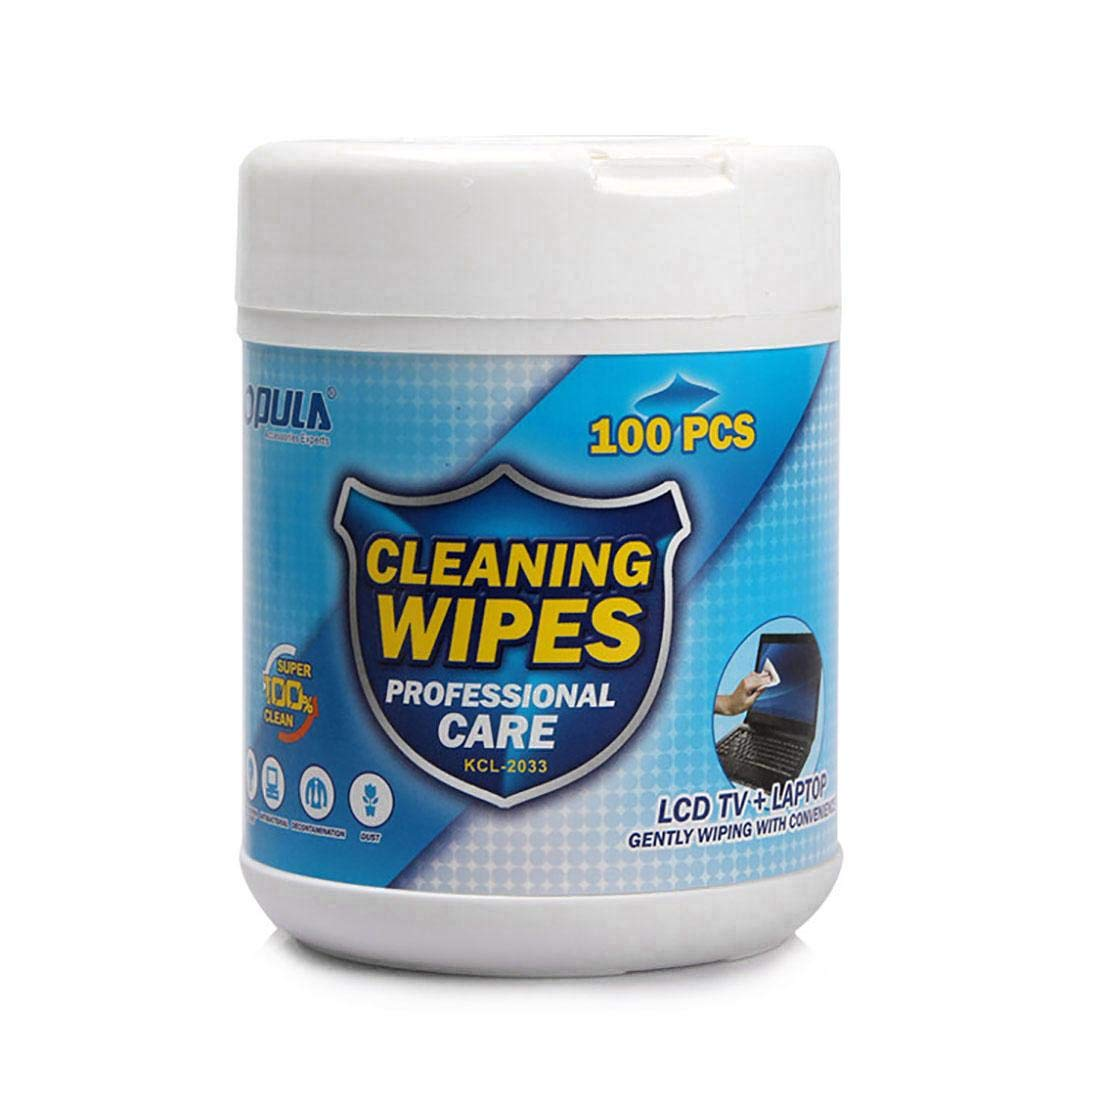 KLSP KCL-2033 Cleaning Wipes for Computer Screen